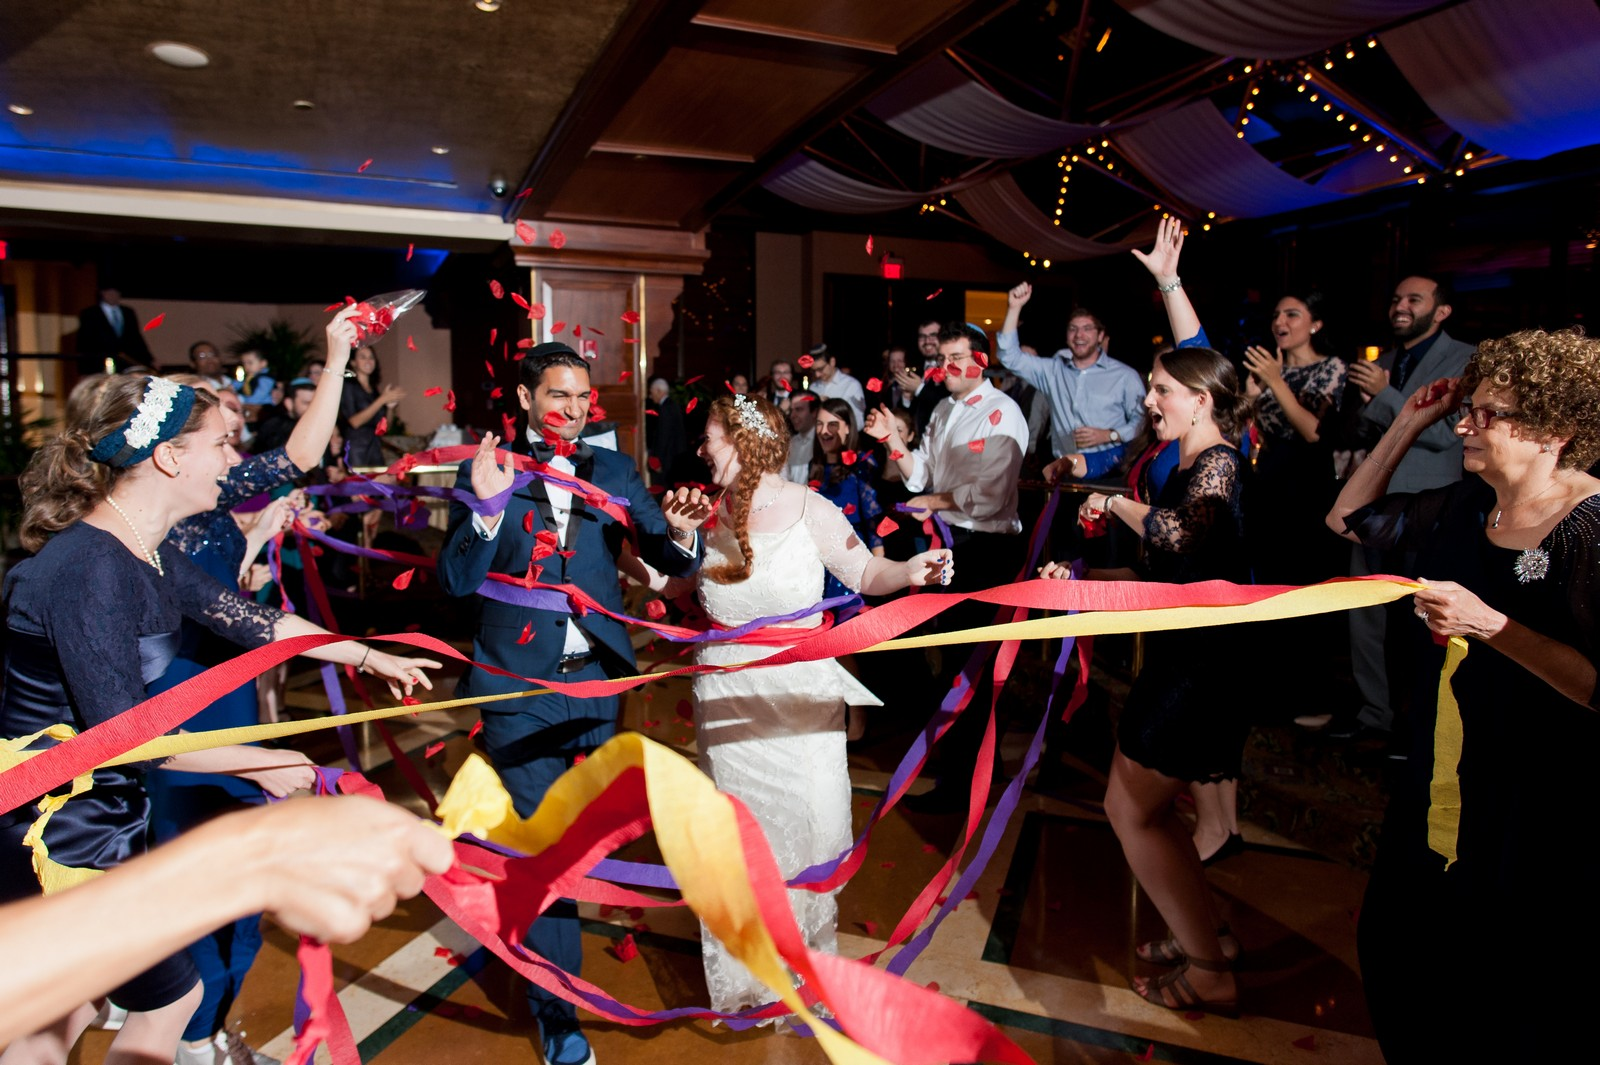 Sam and Yishai's Modern Orthodox Jewish Wedding at Crest Hollow Country Club, Woodbury NY, Photos by Chaim Schvarcz, Bride, Groom, Wedding Dancing